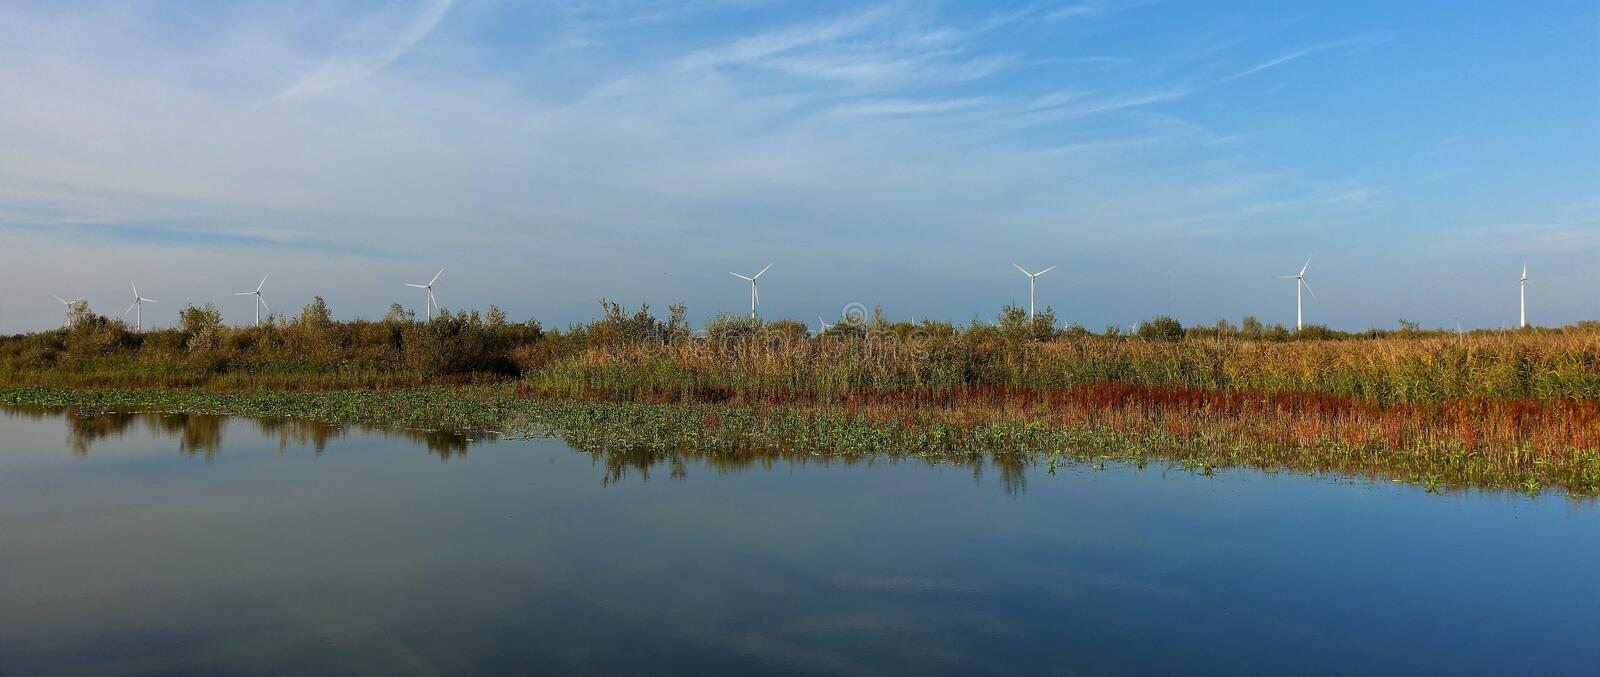 Windmills at Harderbroek Flevoland. Flevoland and windmills belong together. Autumn brings brown and yellow colours stock photo